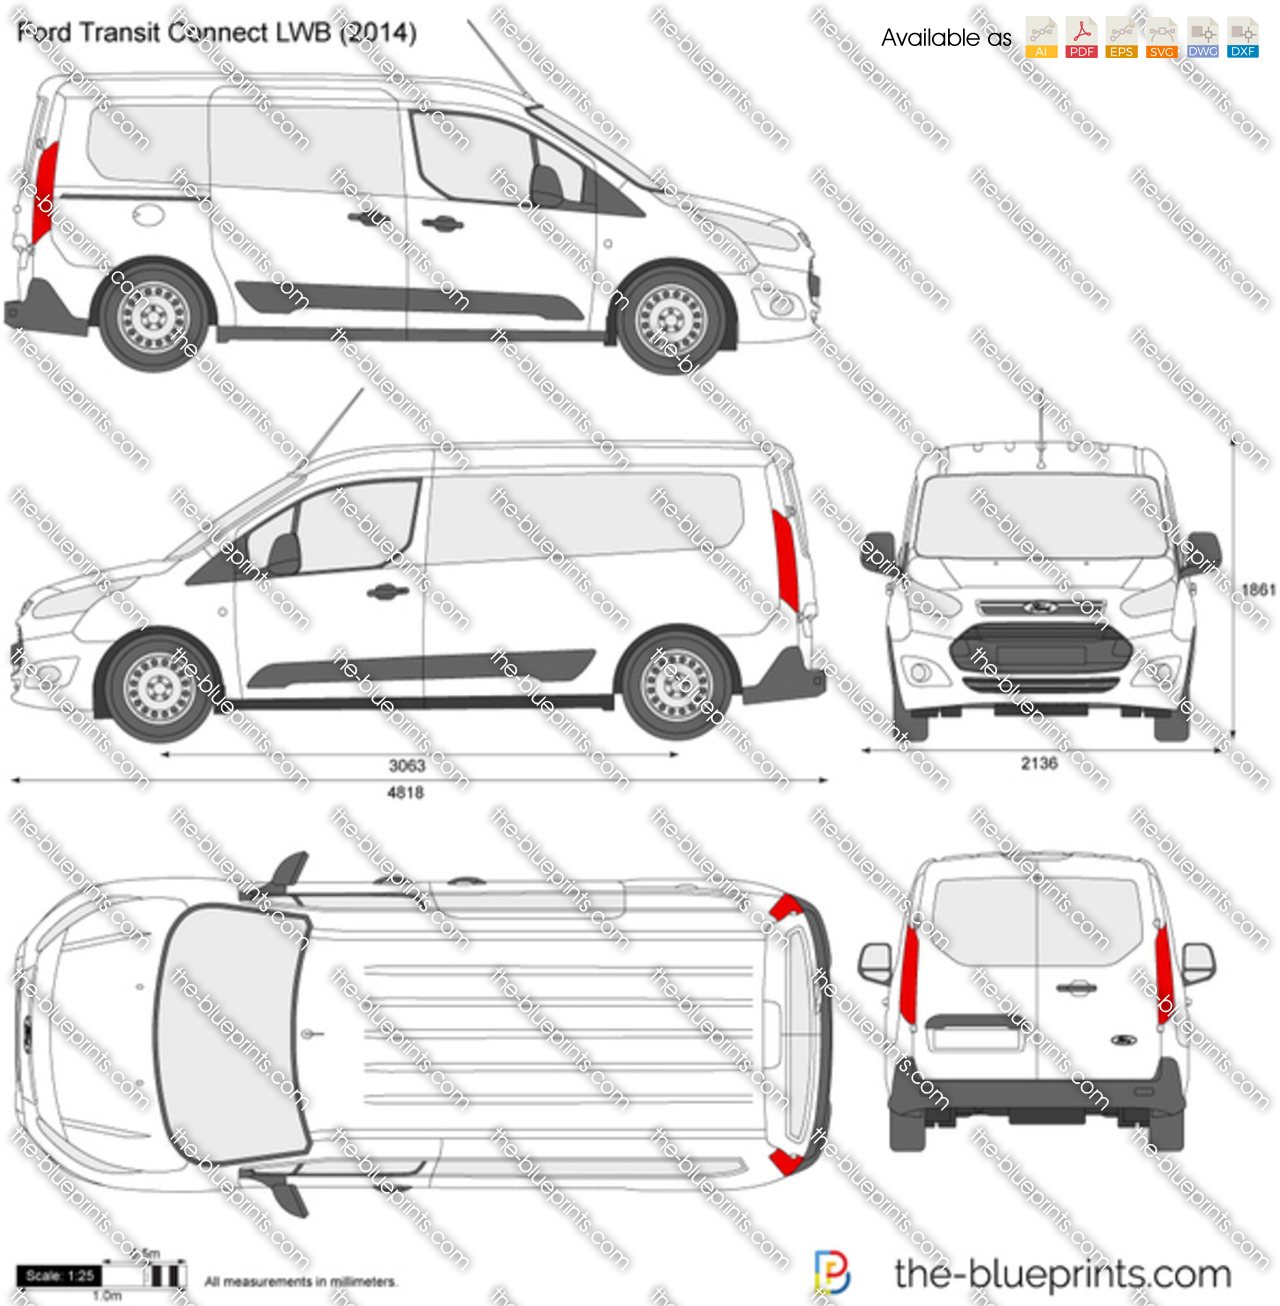 ford transit connect lwb vector drawing. Black Bedroom Furniture Sets. Home Design Ideas